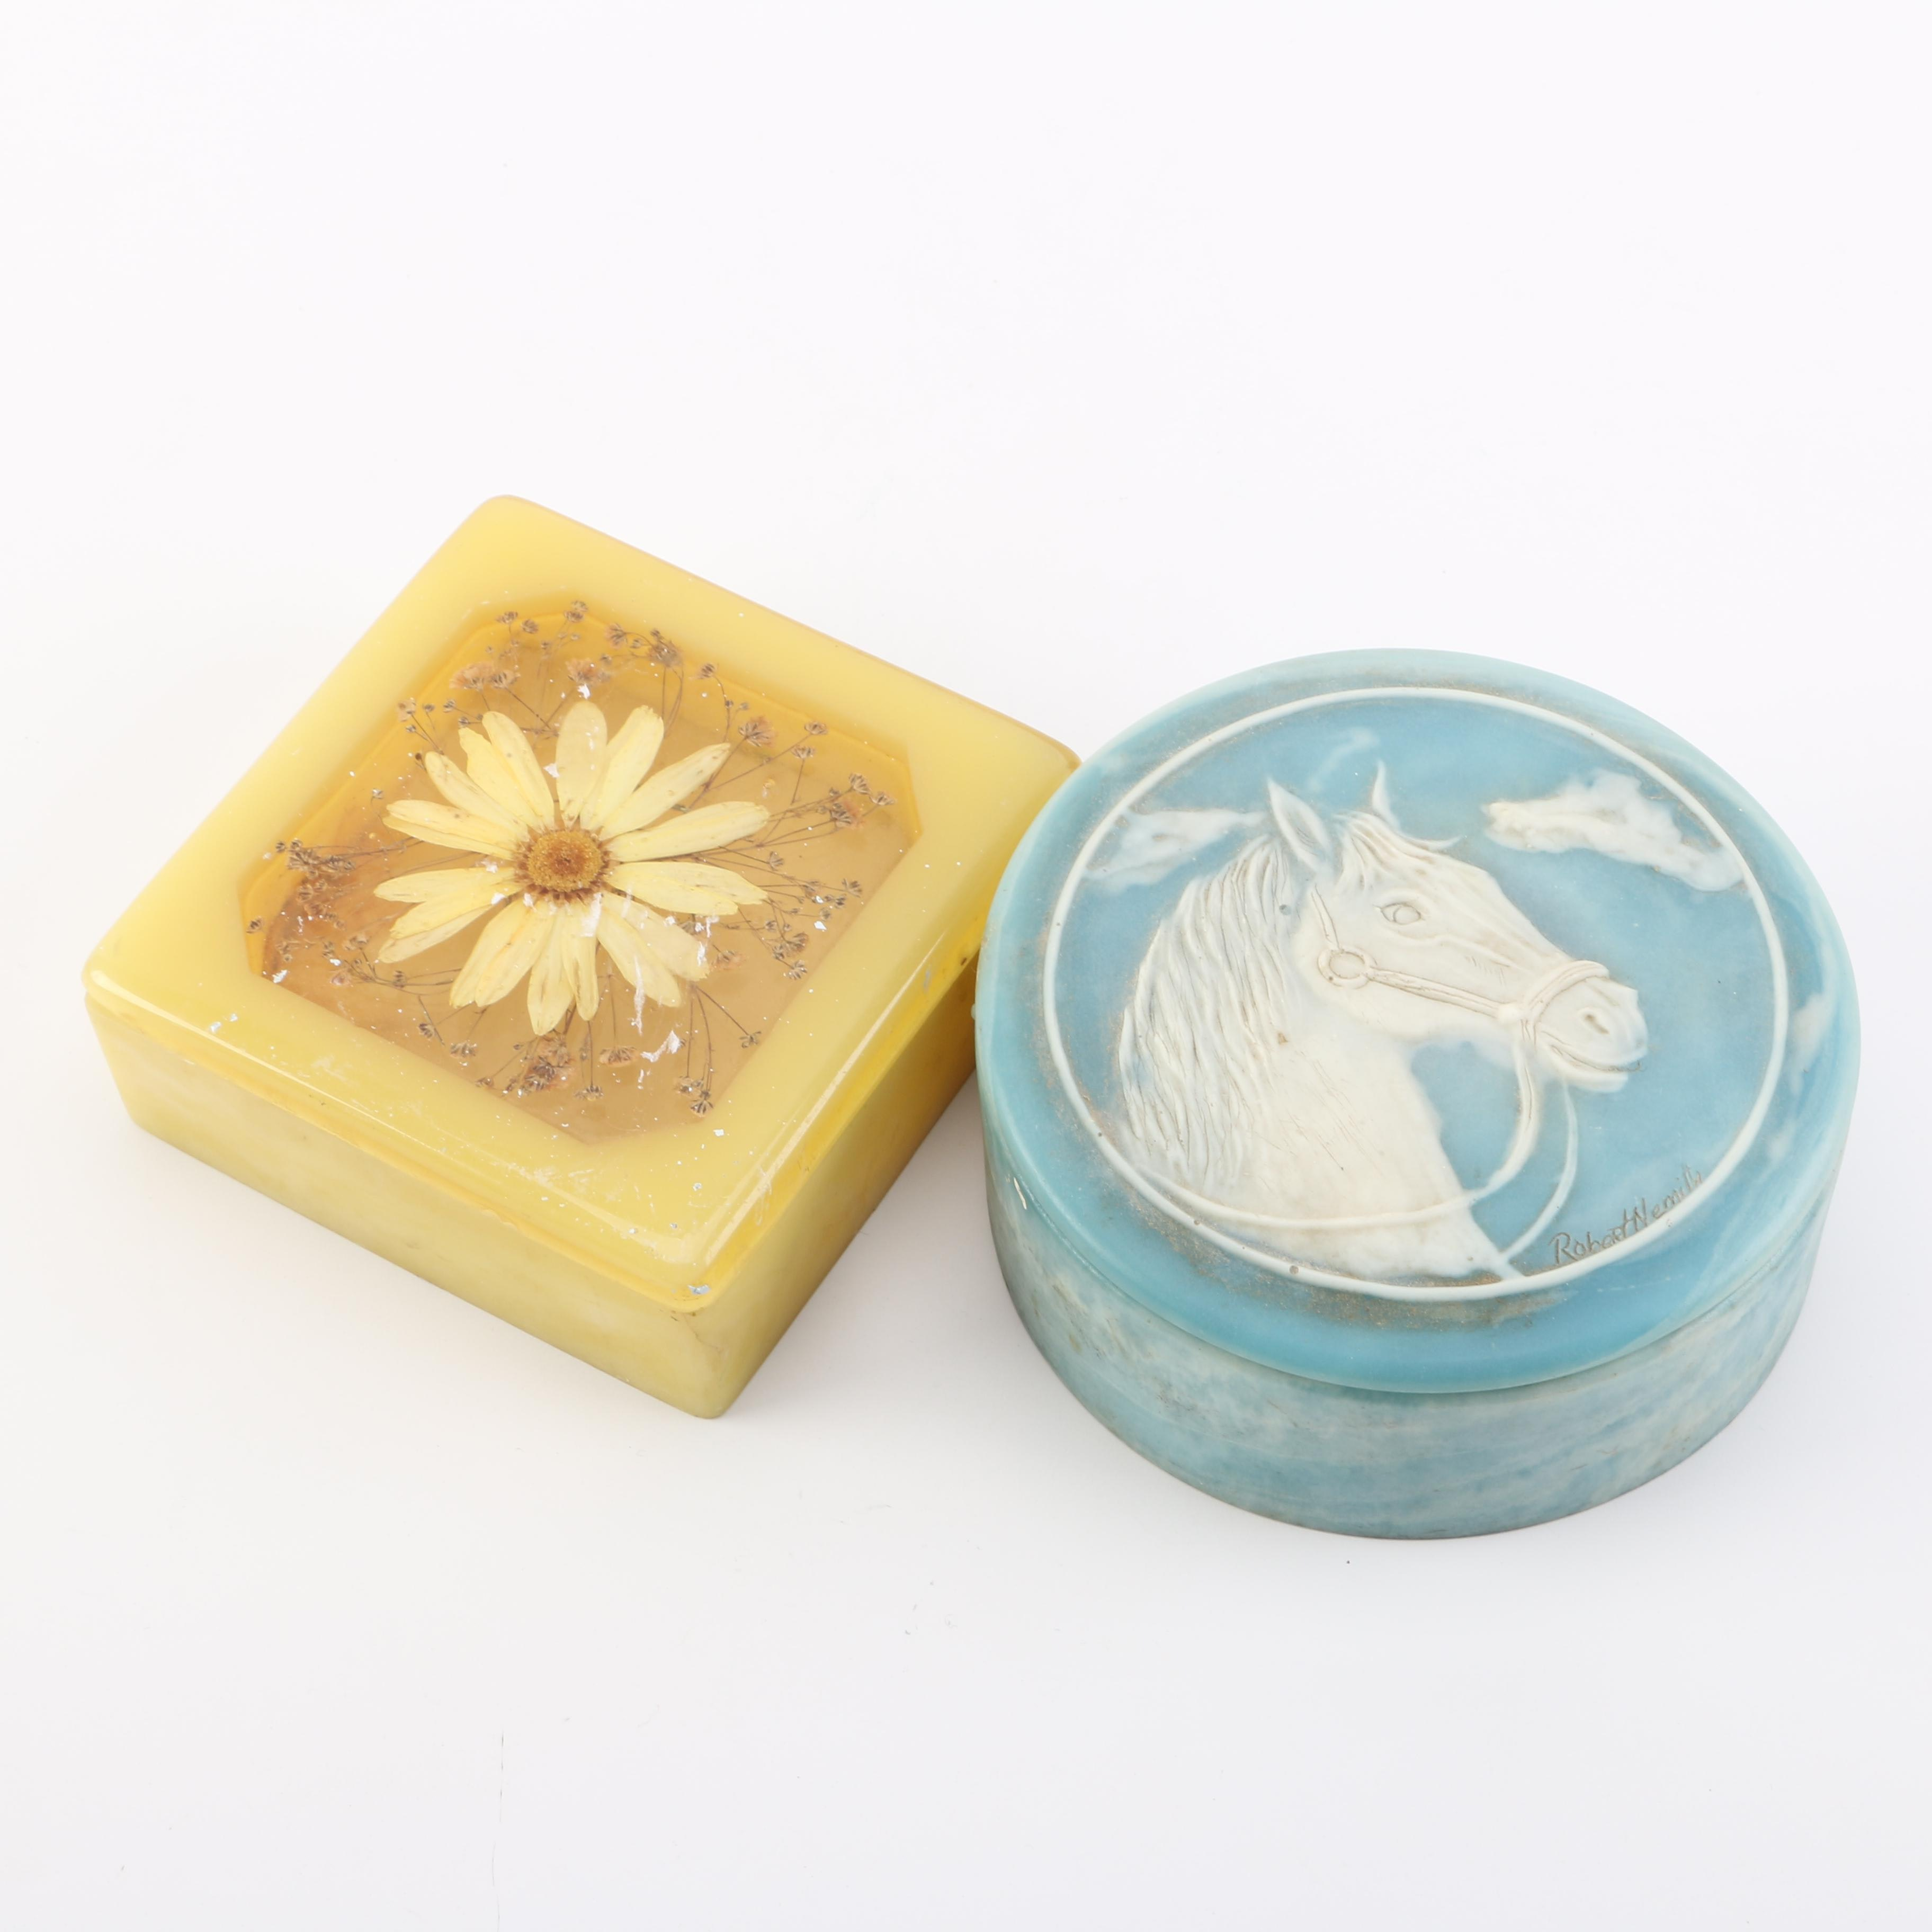 Horse and Flower Themed Trinket Boxes